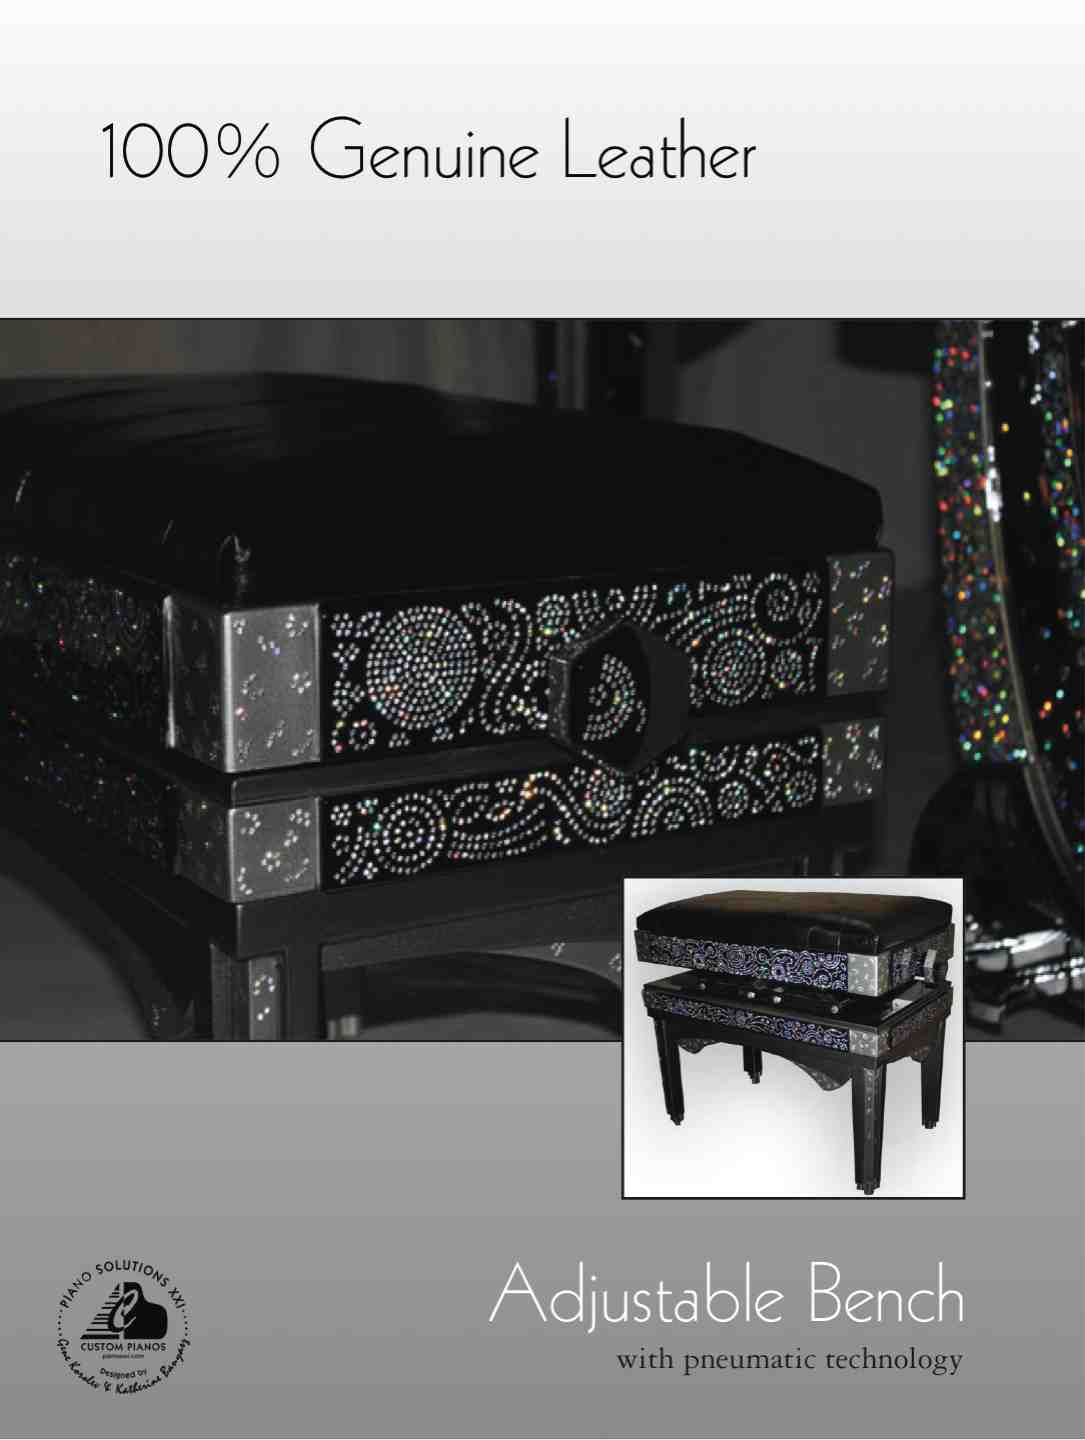 13 Discover New York Serenade Custom Piano